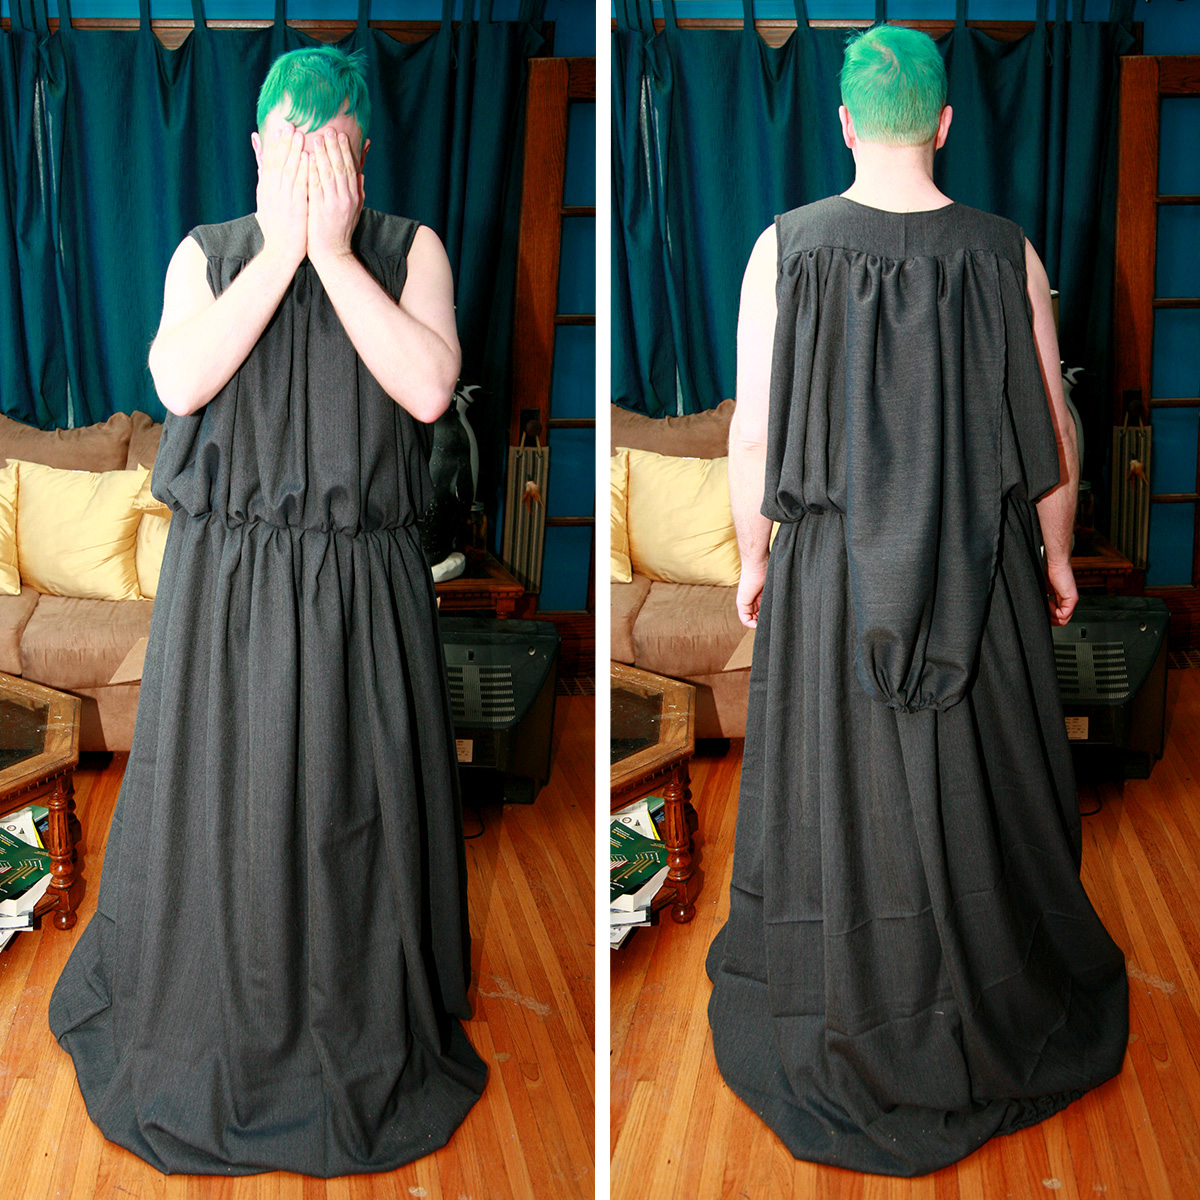 A two part image - front and back views of a man in a billowy, full length grey dress.